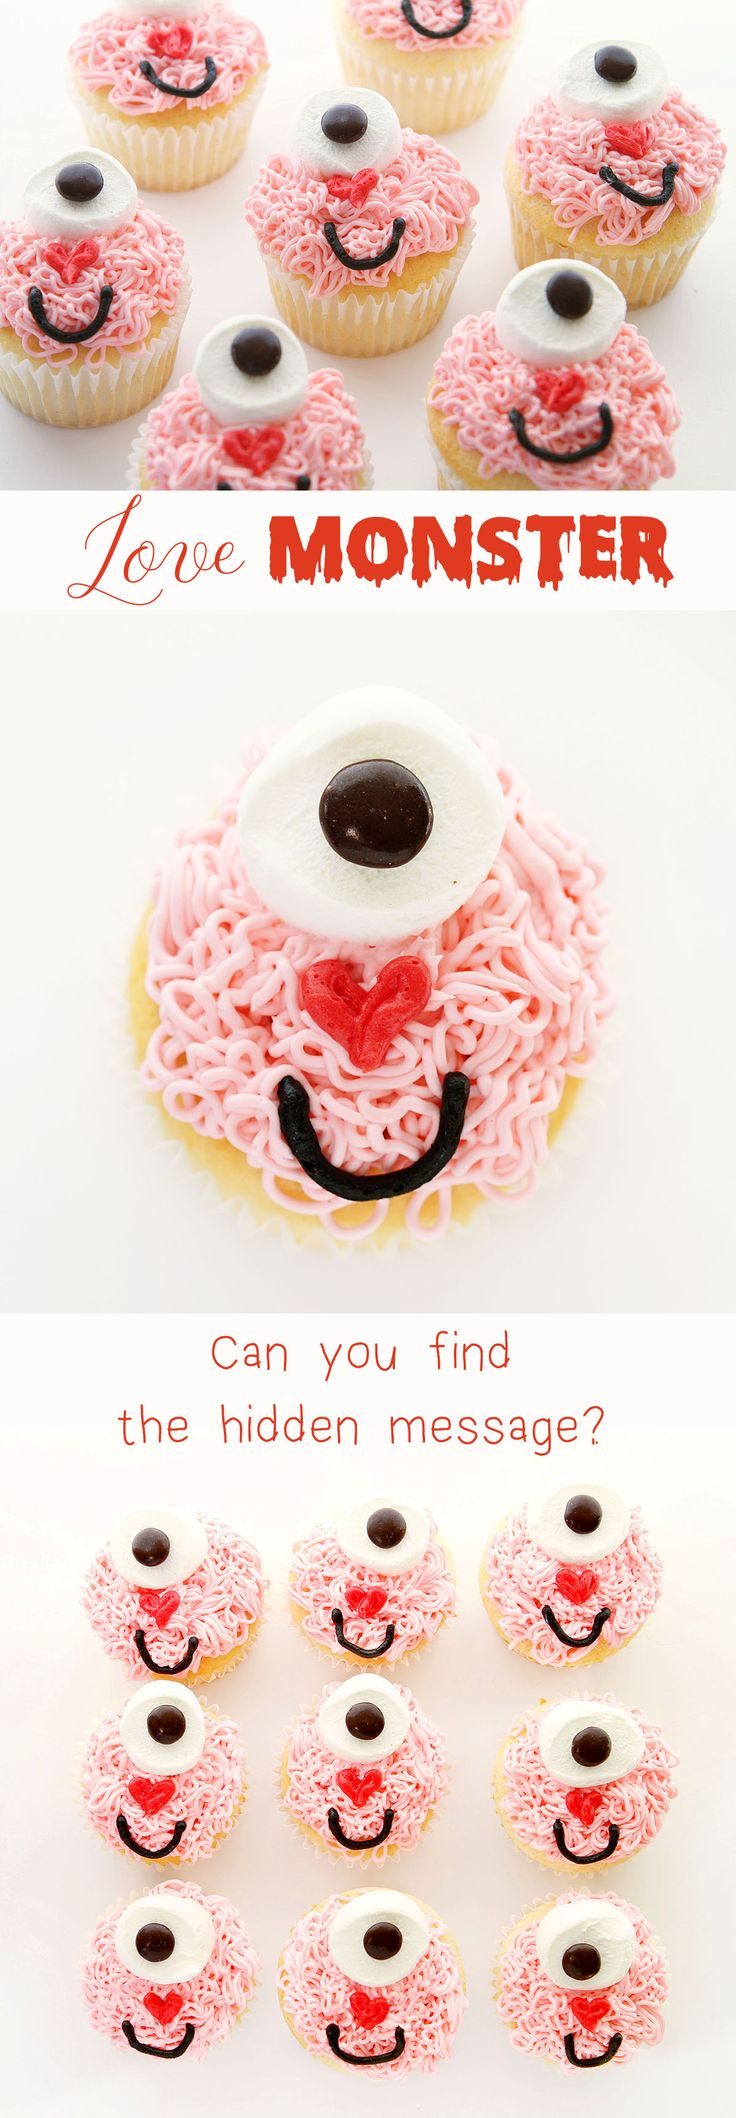 SUPER easy and delicious! This is a fun and easy way to surprise anyone you love… there is even a secret message in the design! Great cupcake DIY instructions for Valentine's Day or a child's birthday party.